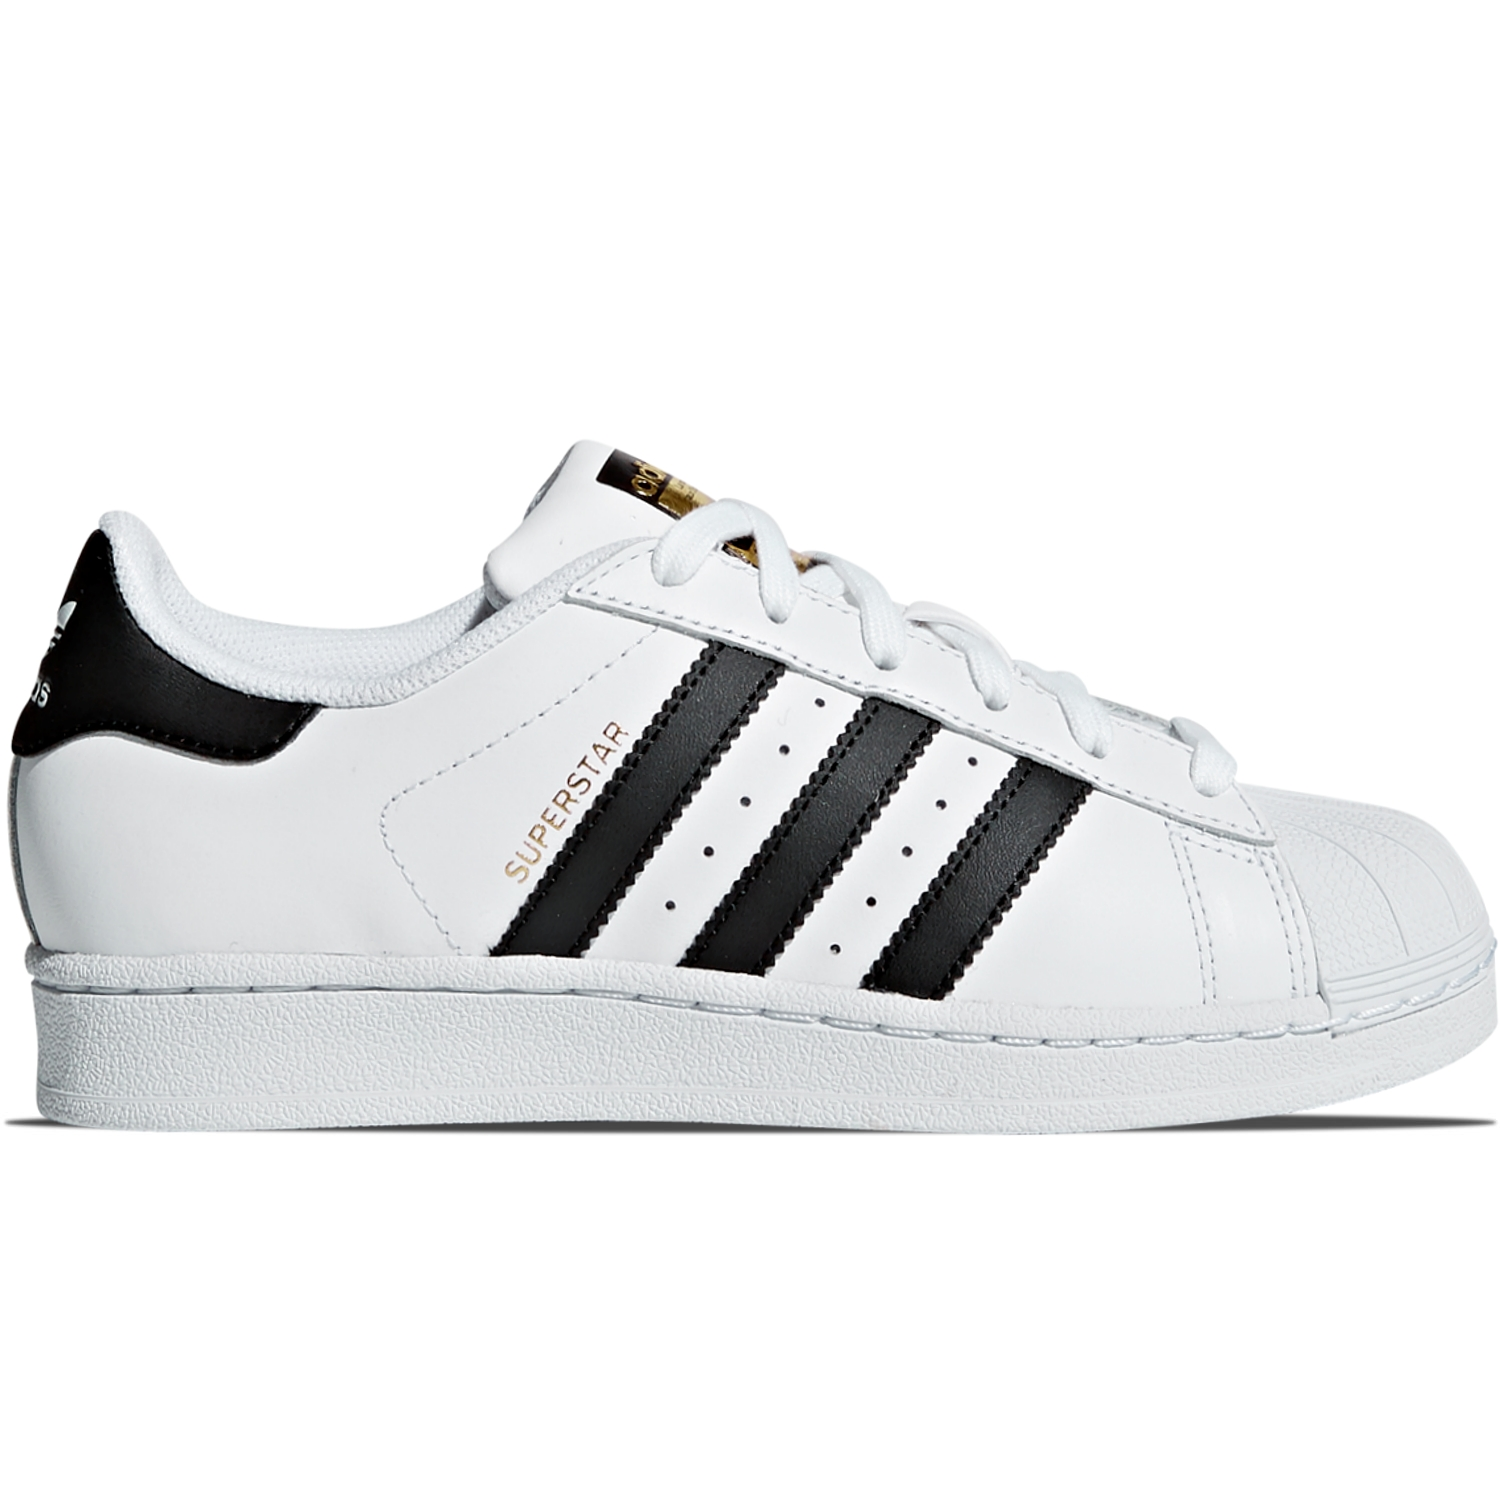 cc0ad86c66849 BUTY JUNIOR LIFESTYLE ADIDAS SUPERSTAR BIAŁE C77154 | Sneakershop.pl